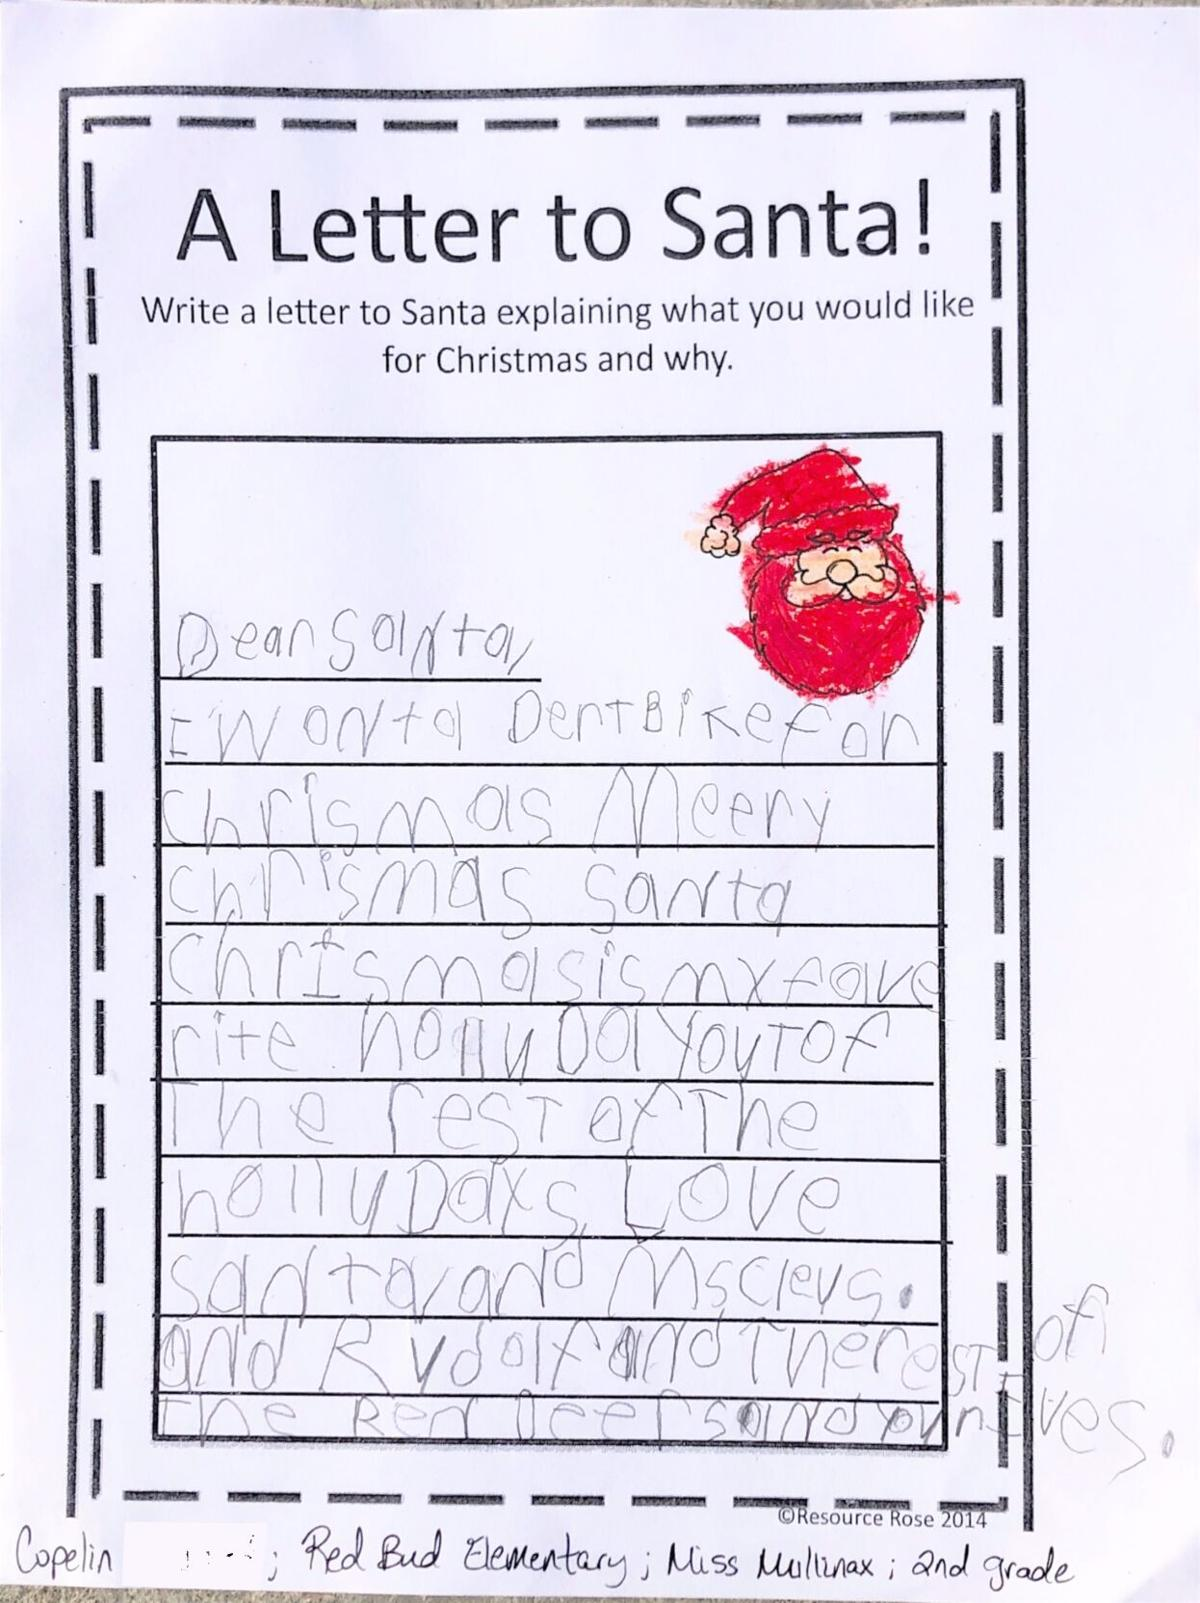 A Letter to Santa!